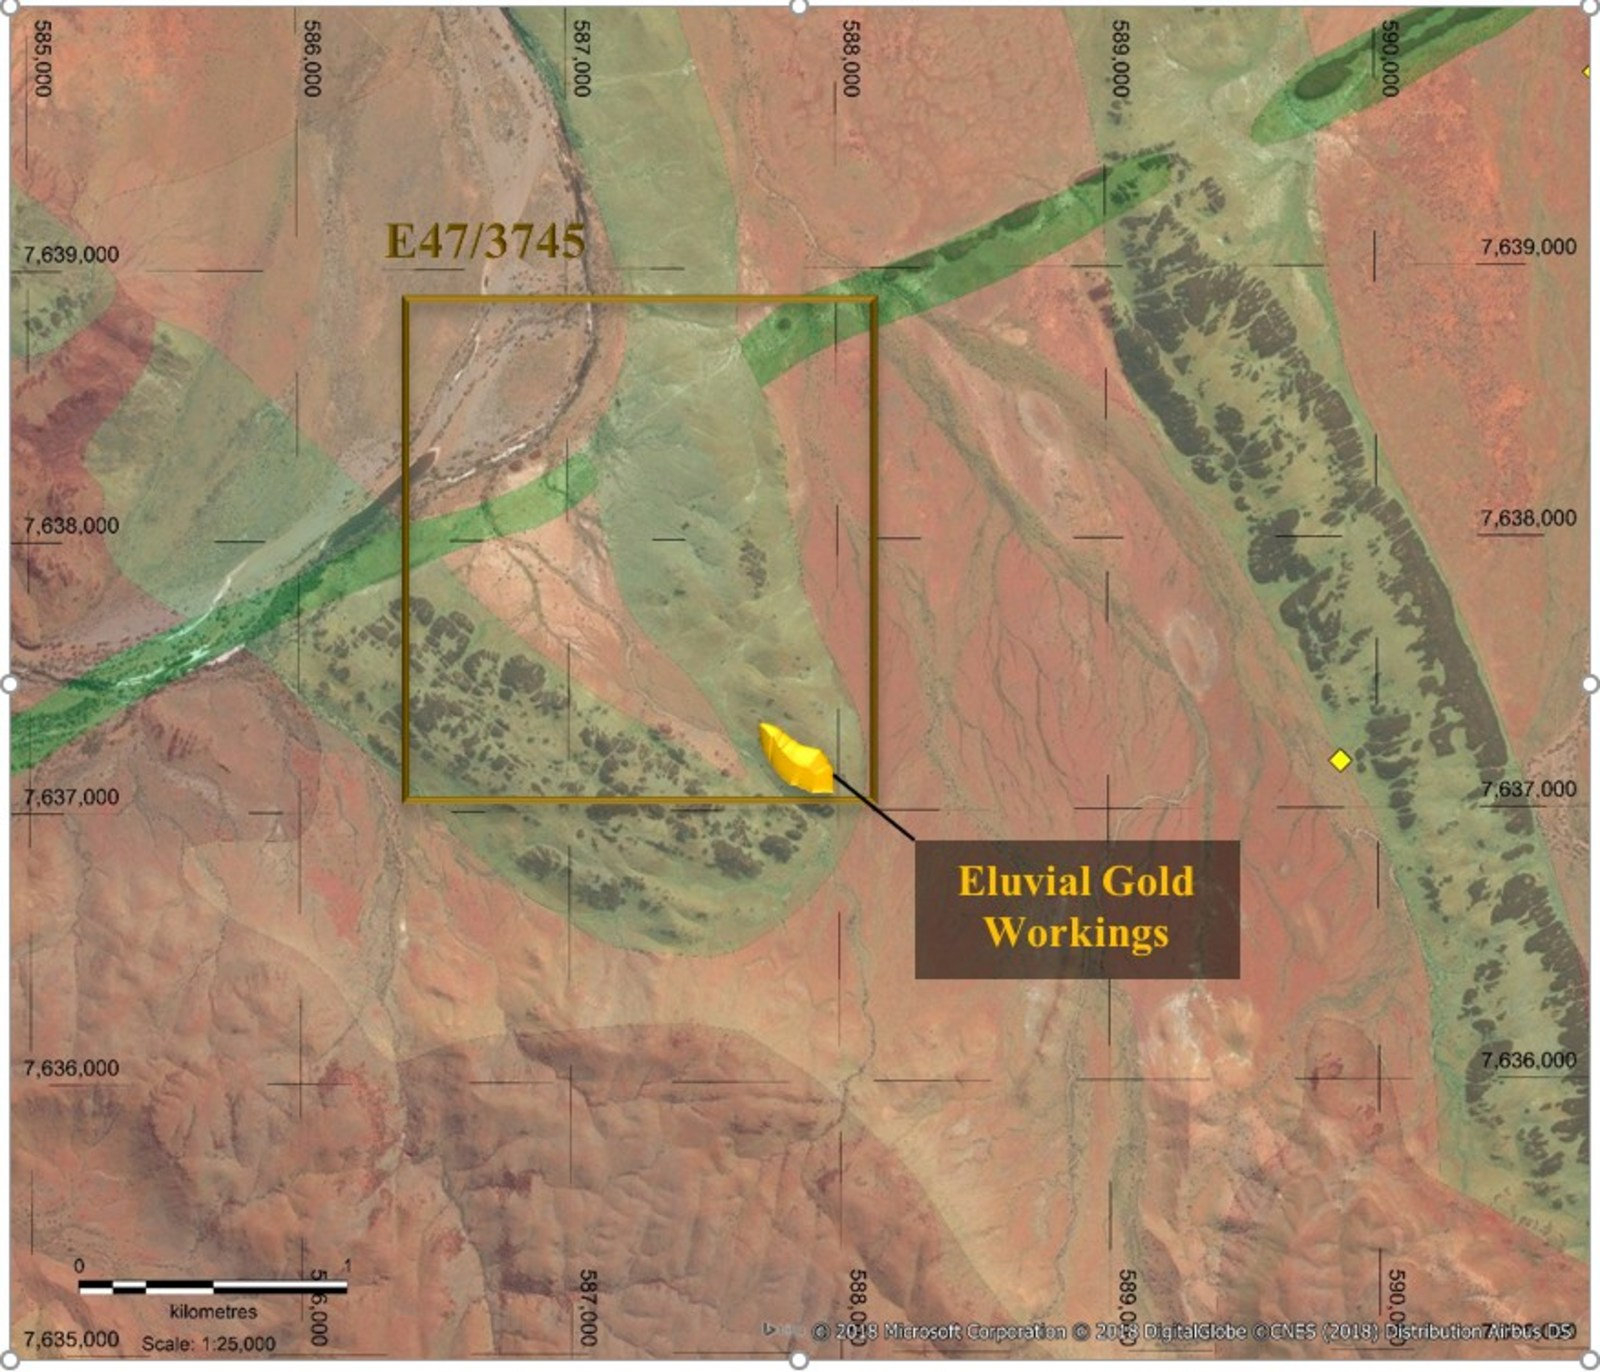 Figure 1. Tardarinna Project - Project Geology & Historical Mining